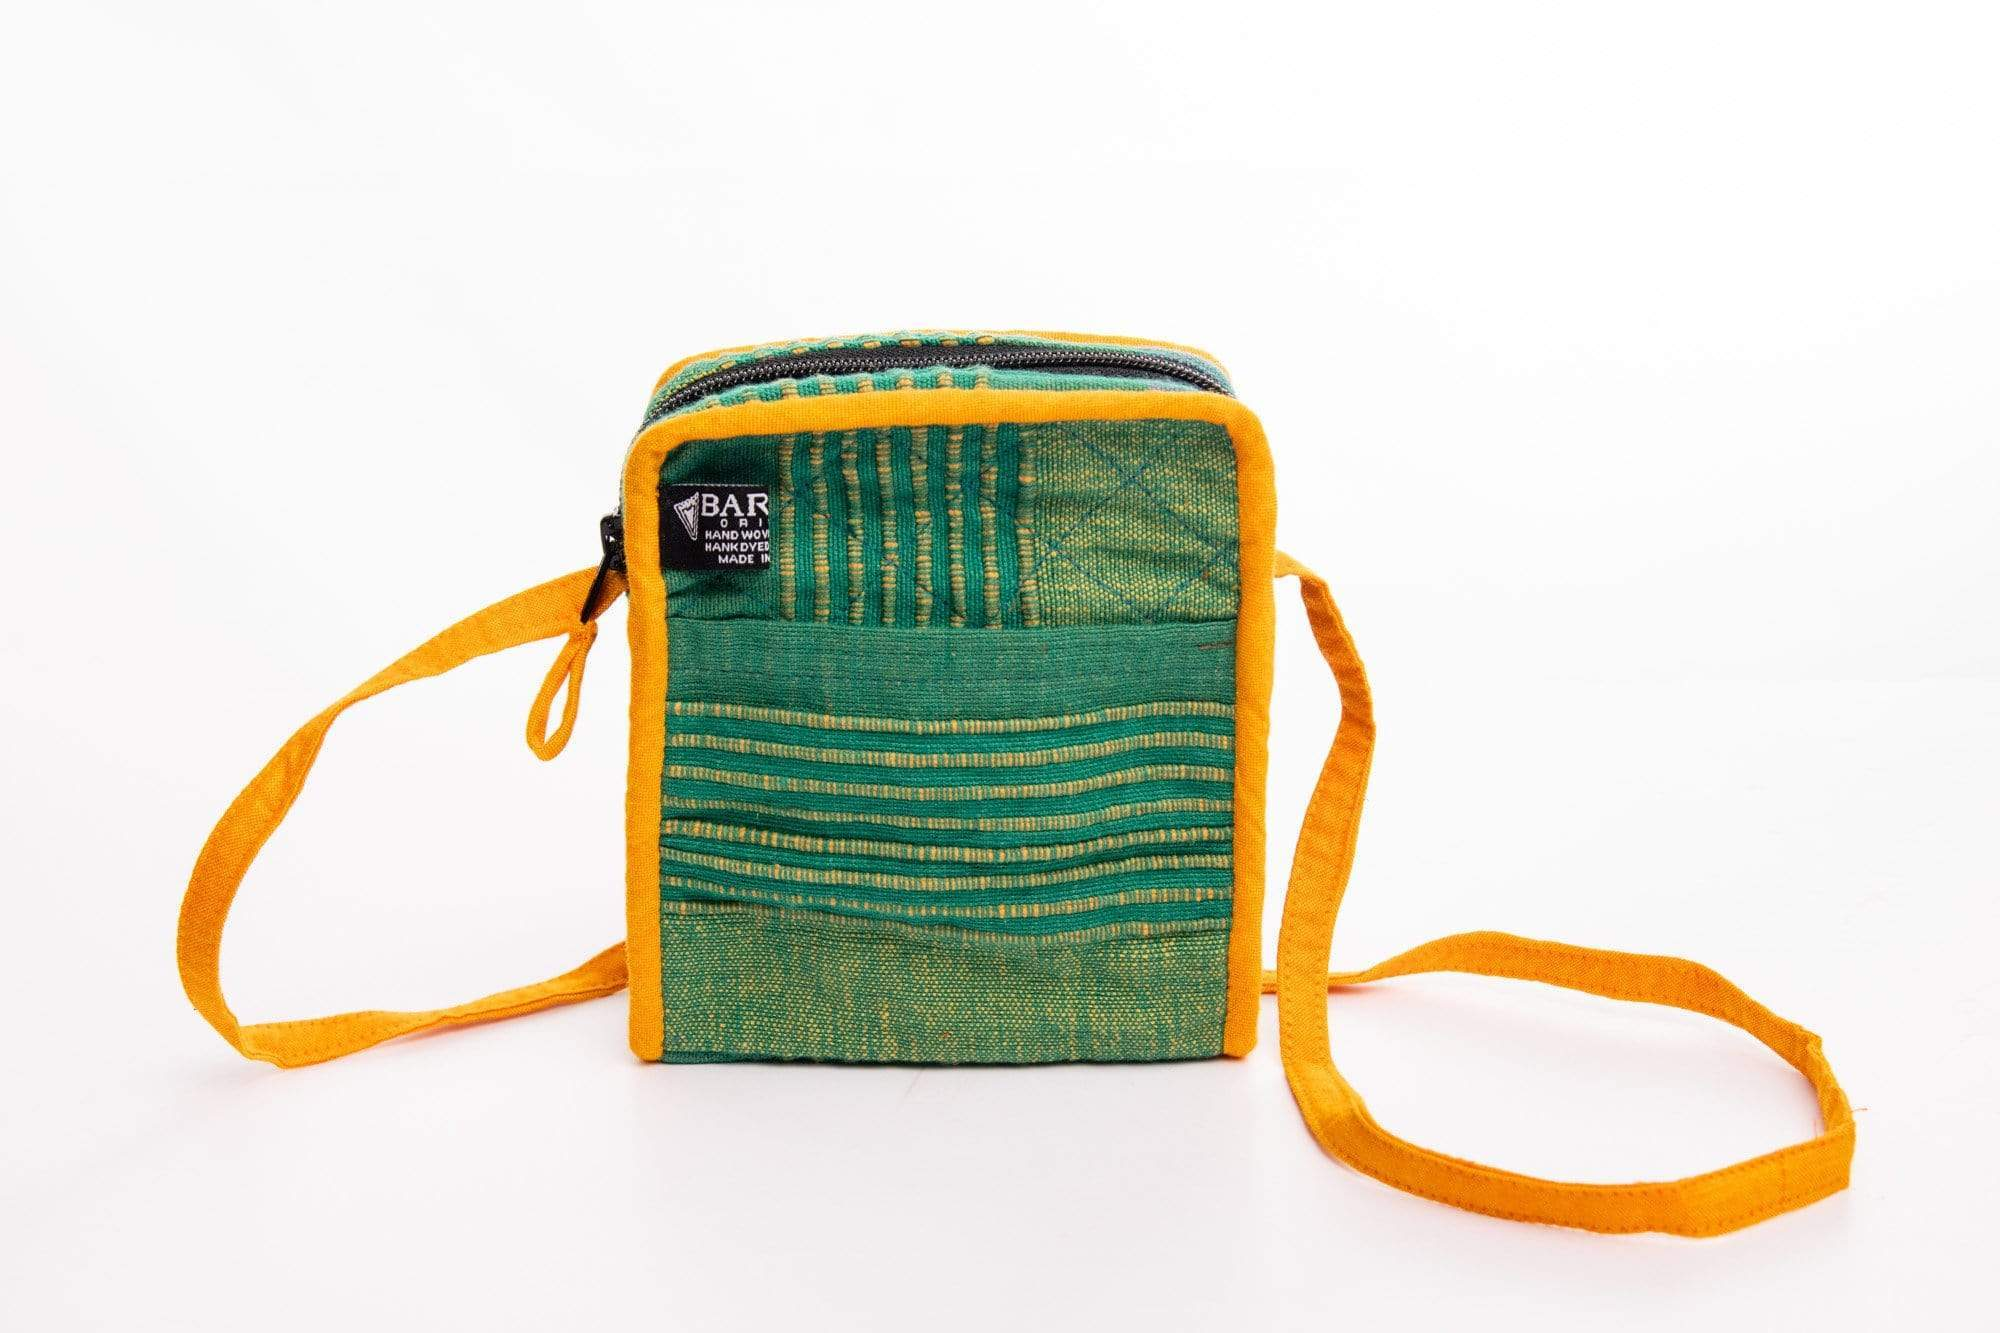 sustainable ethical handmade handloom slow-fashion Crossbody Bag R Copy of Copy of Copy of Copy of Copy of Copy of Copy of Copy of Copy of Copy of Copy of Copy of Copy of Copy of Copy of Copy of Copy of Copy of Chootie Mini Crossbody Bag made in sri lanka